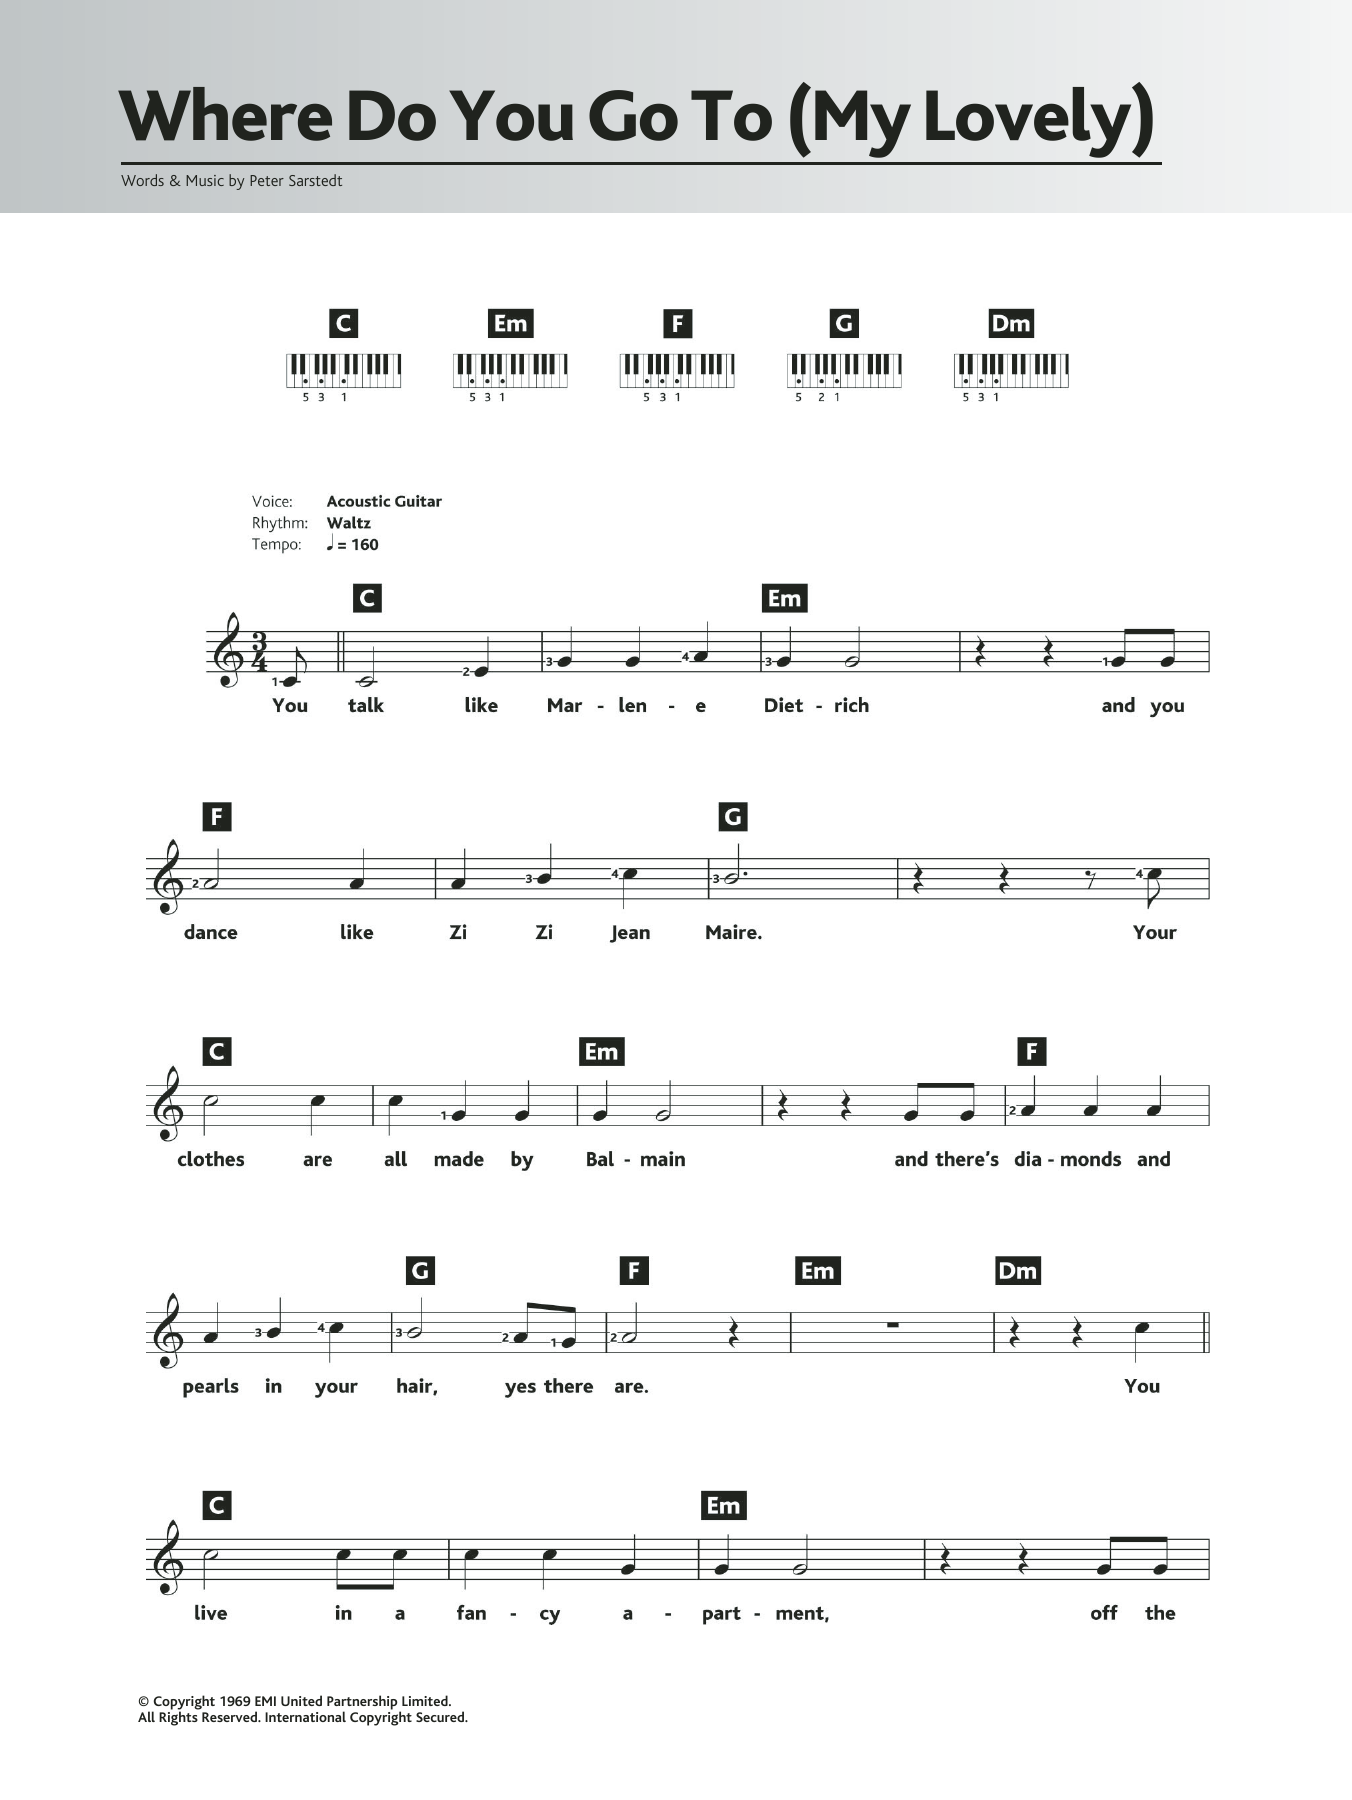 Where Do You Go To (My Lovely) Sheet Music